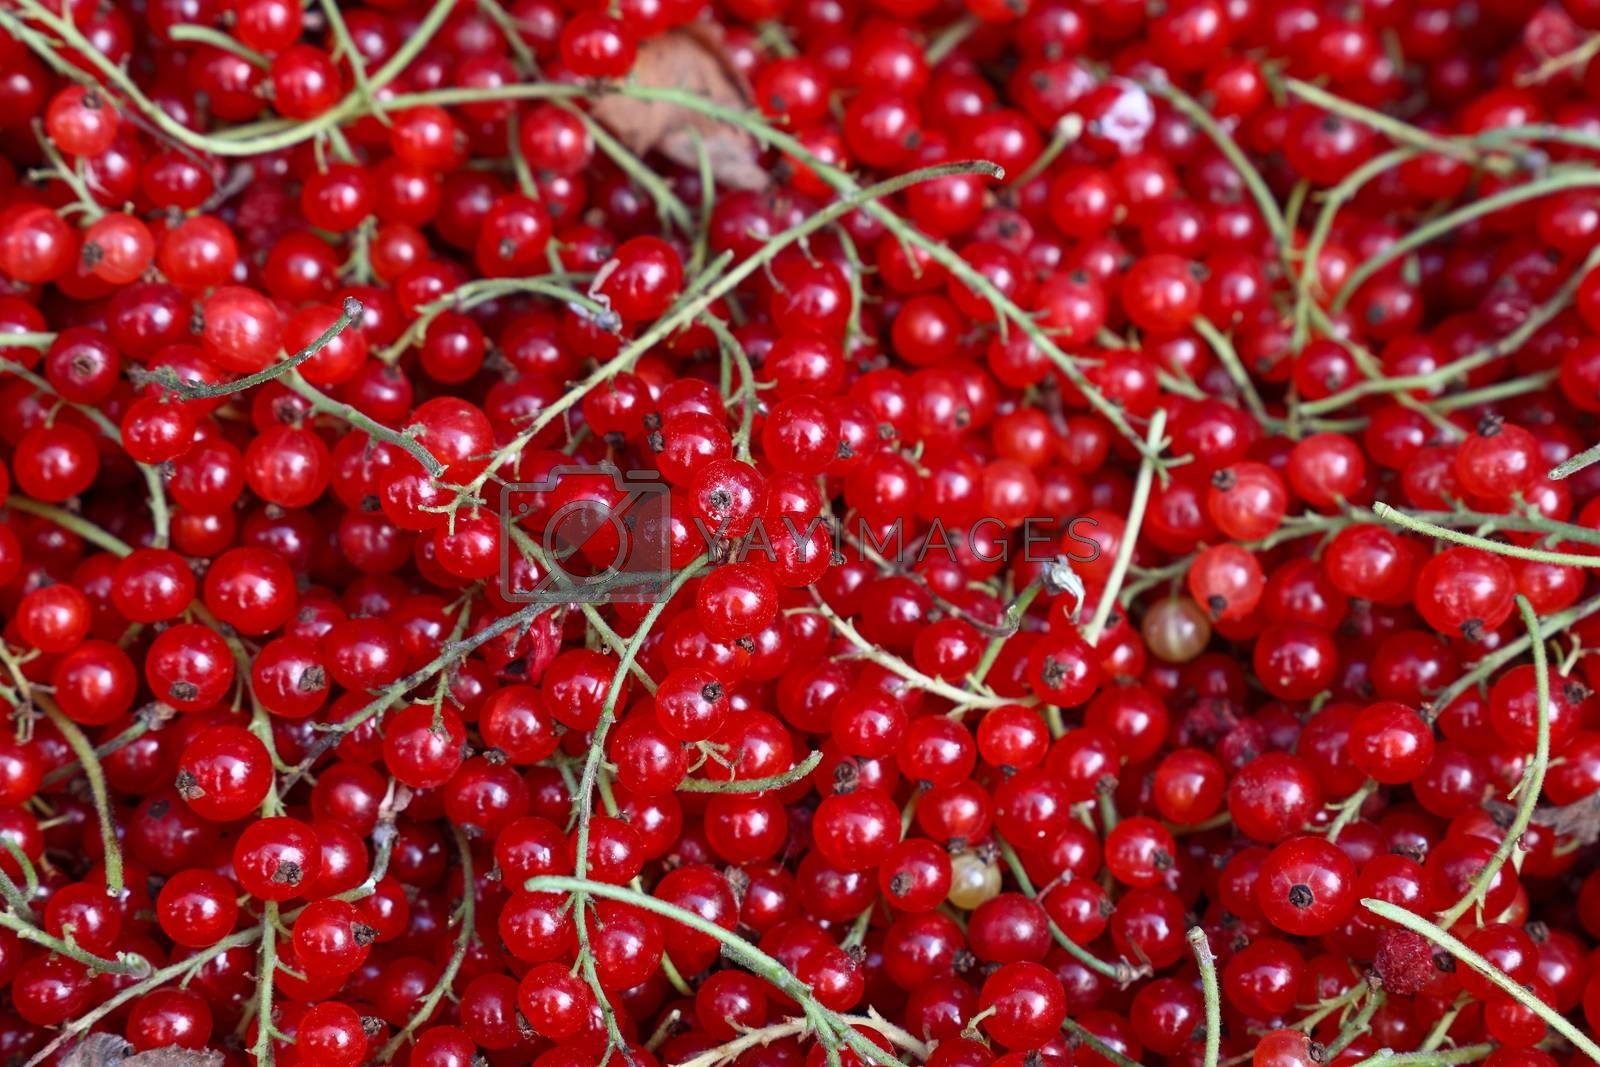 Close up fresh redcurrant on retail display by BreakingTheWalls